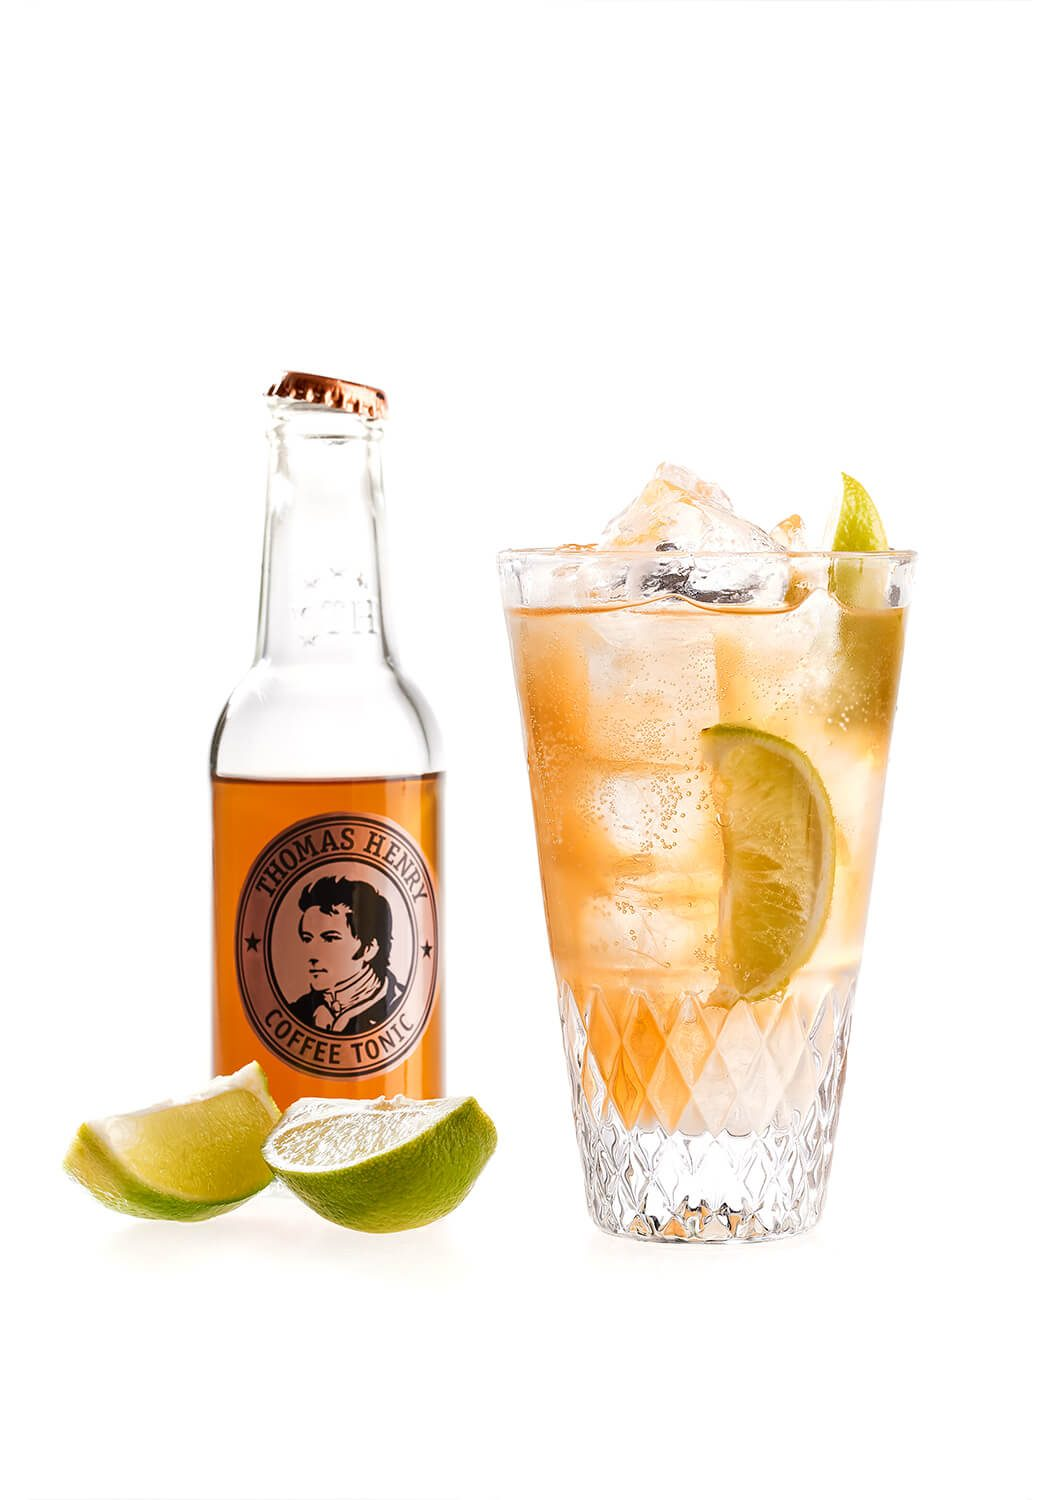 Der Cuban Coffee aka El Rakete mit Thomas Henry Coffee Tonic